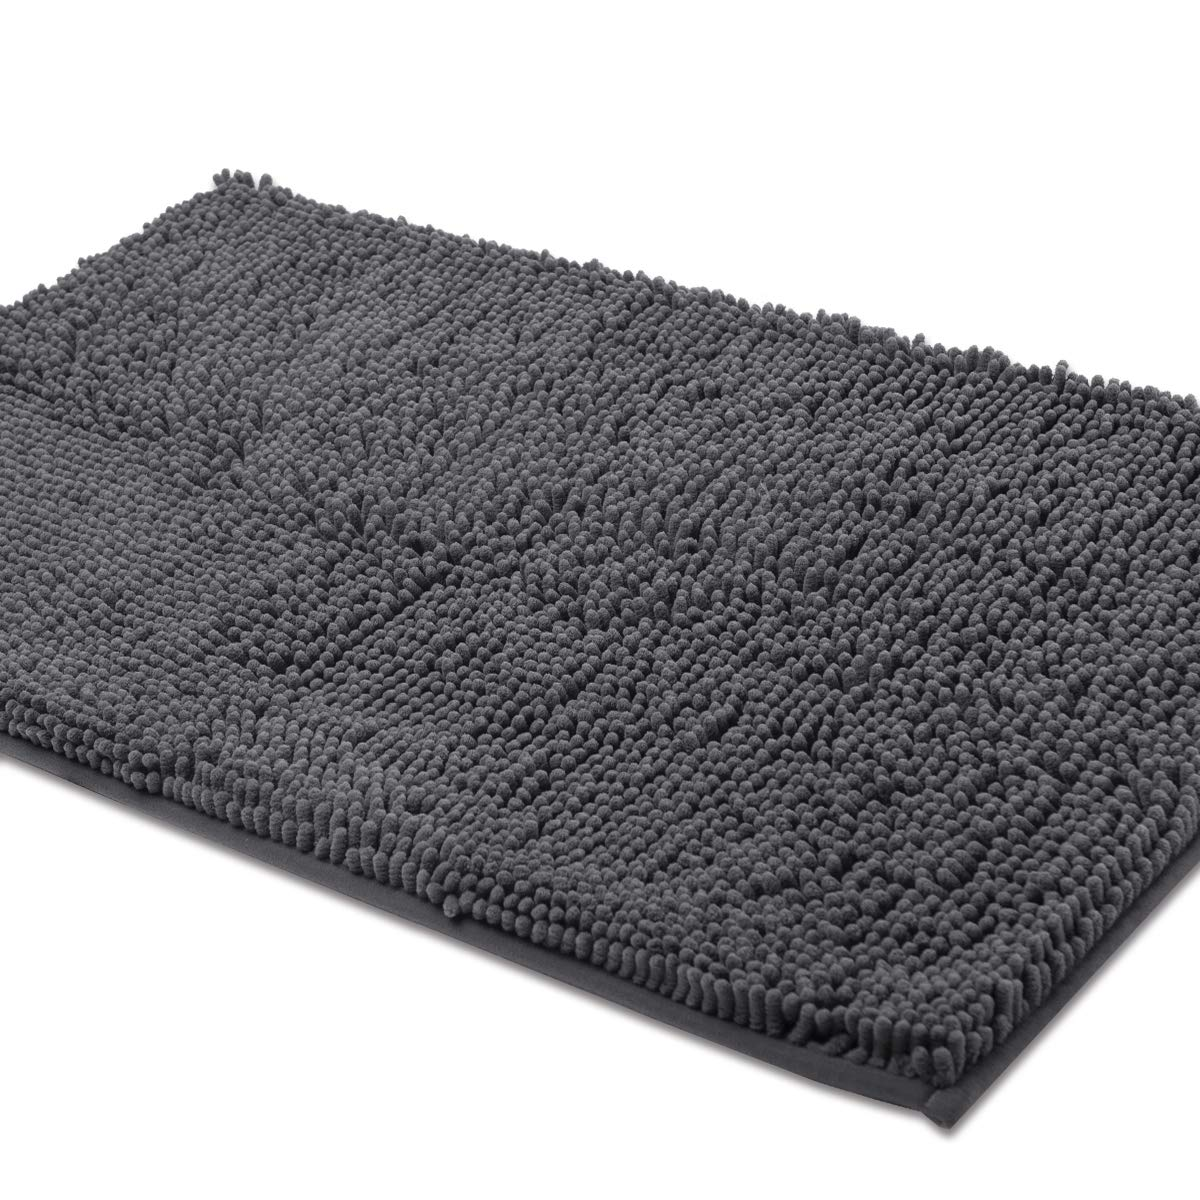 ITSOFT Non Slip Shaggy Chenille Bath Mat for Bathroom Rug Water Absorbent Carpet 21 x 34 Inches Charcoal Gray by ITSOFT